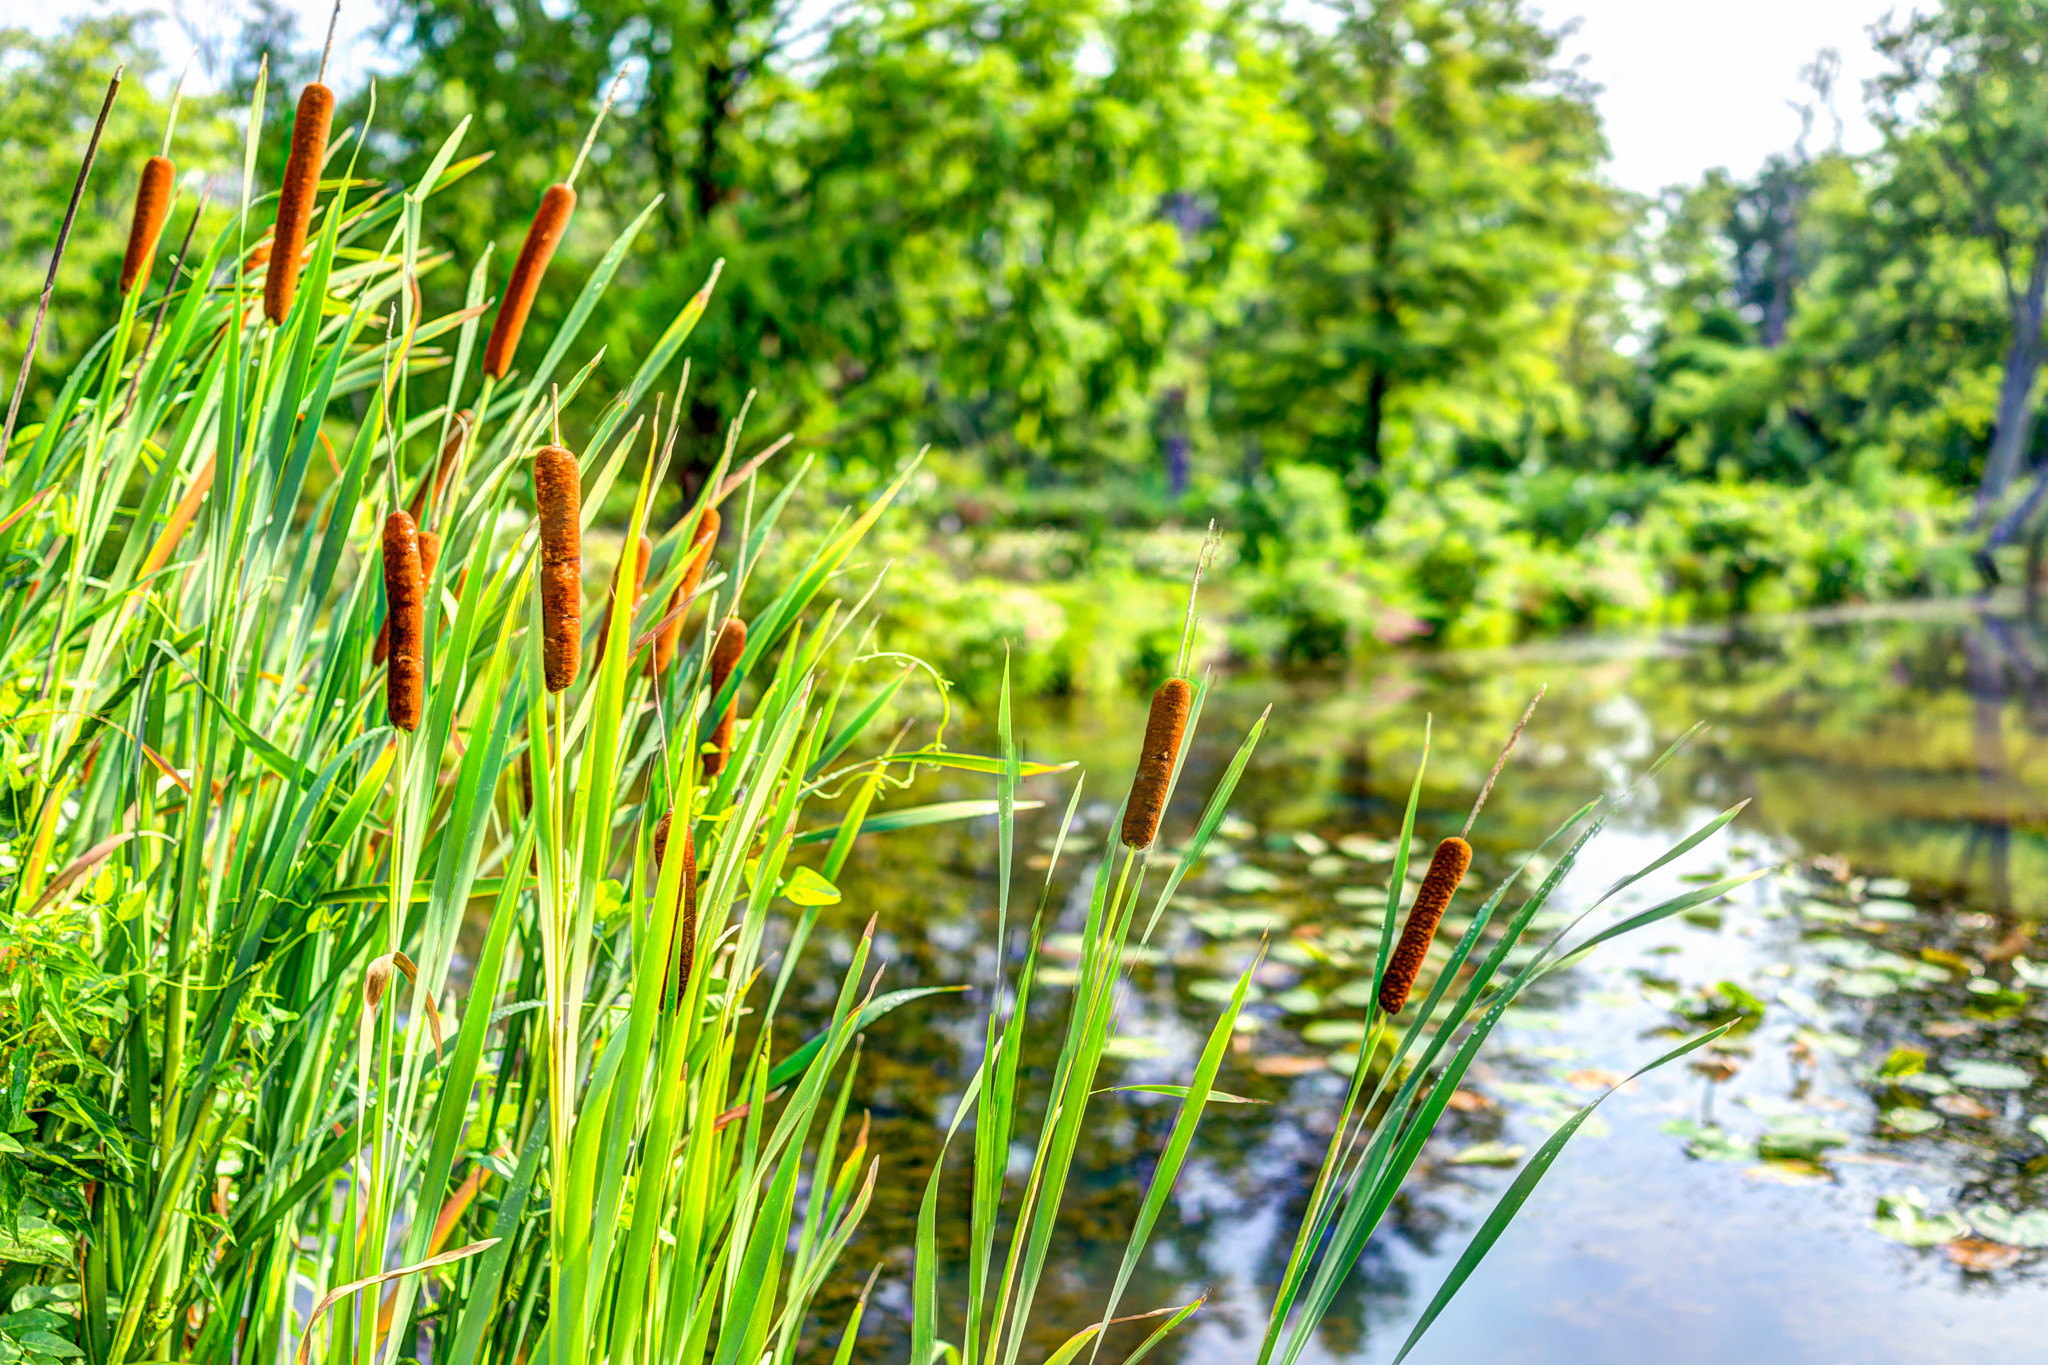 Bare Root Plants Are The More Economical Choice In Landscaping